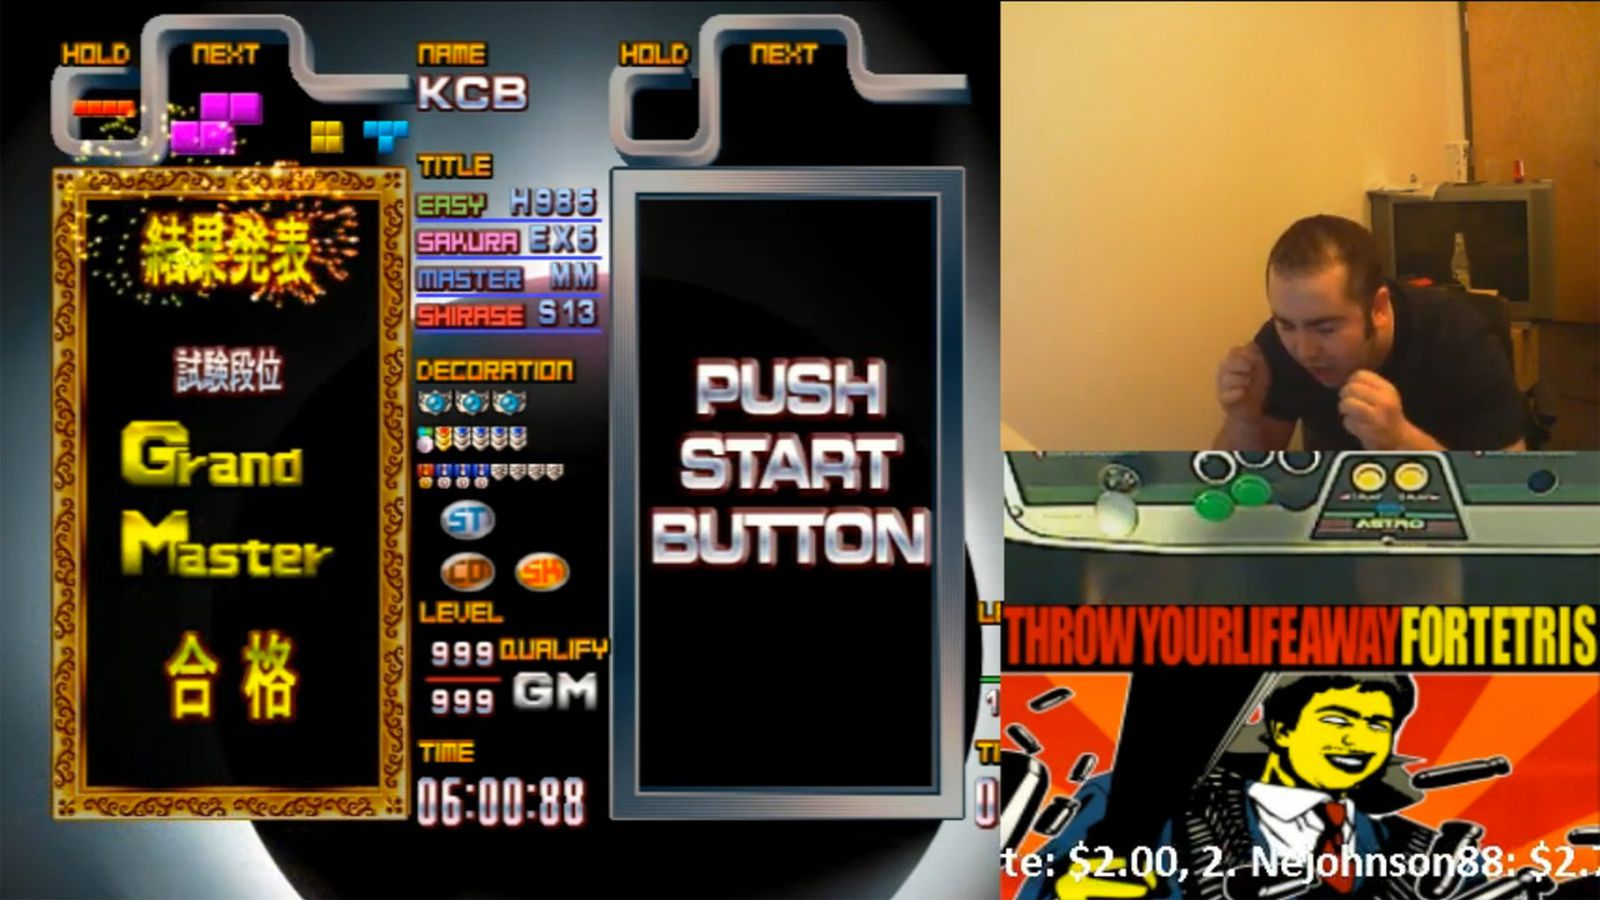 Watch a Tetris master achieve the highest rank in the game after 8